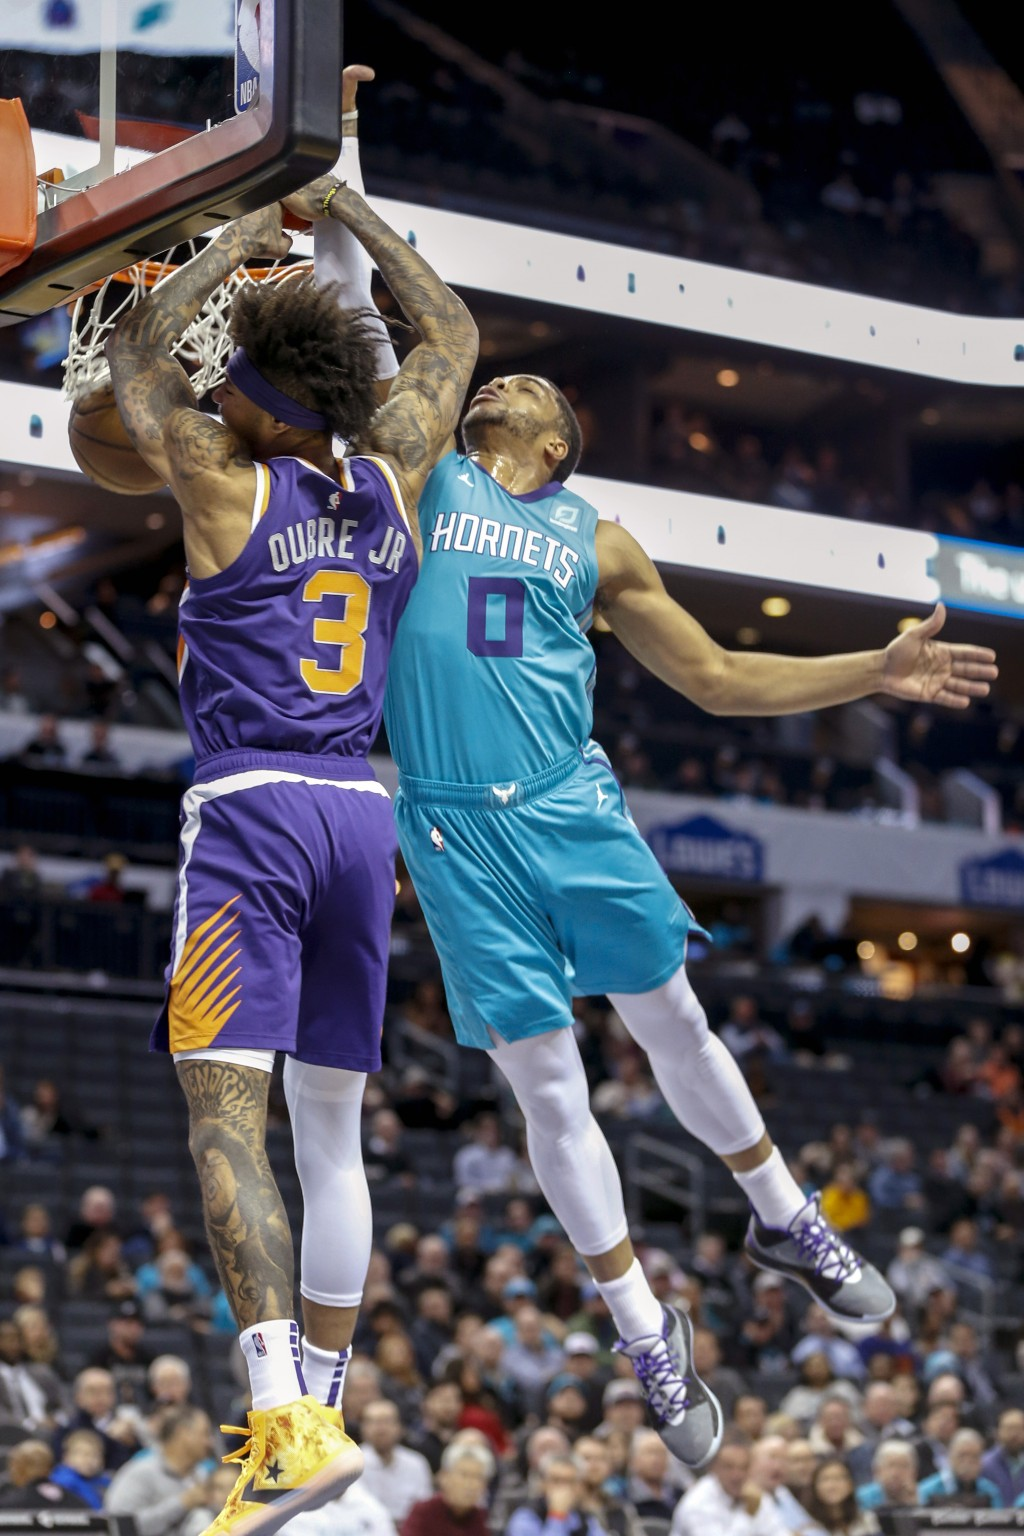 Phoenix Suns forward Kelly Oubre Jr. (3) dunks against Charlotte Hornets forward Miles Bridges (0) in the first half of an NBA basketball game in Char...